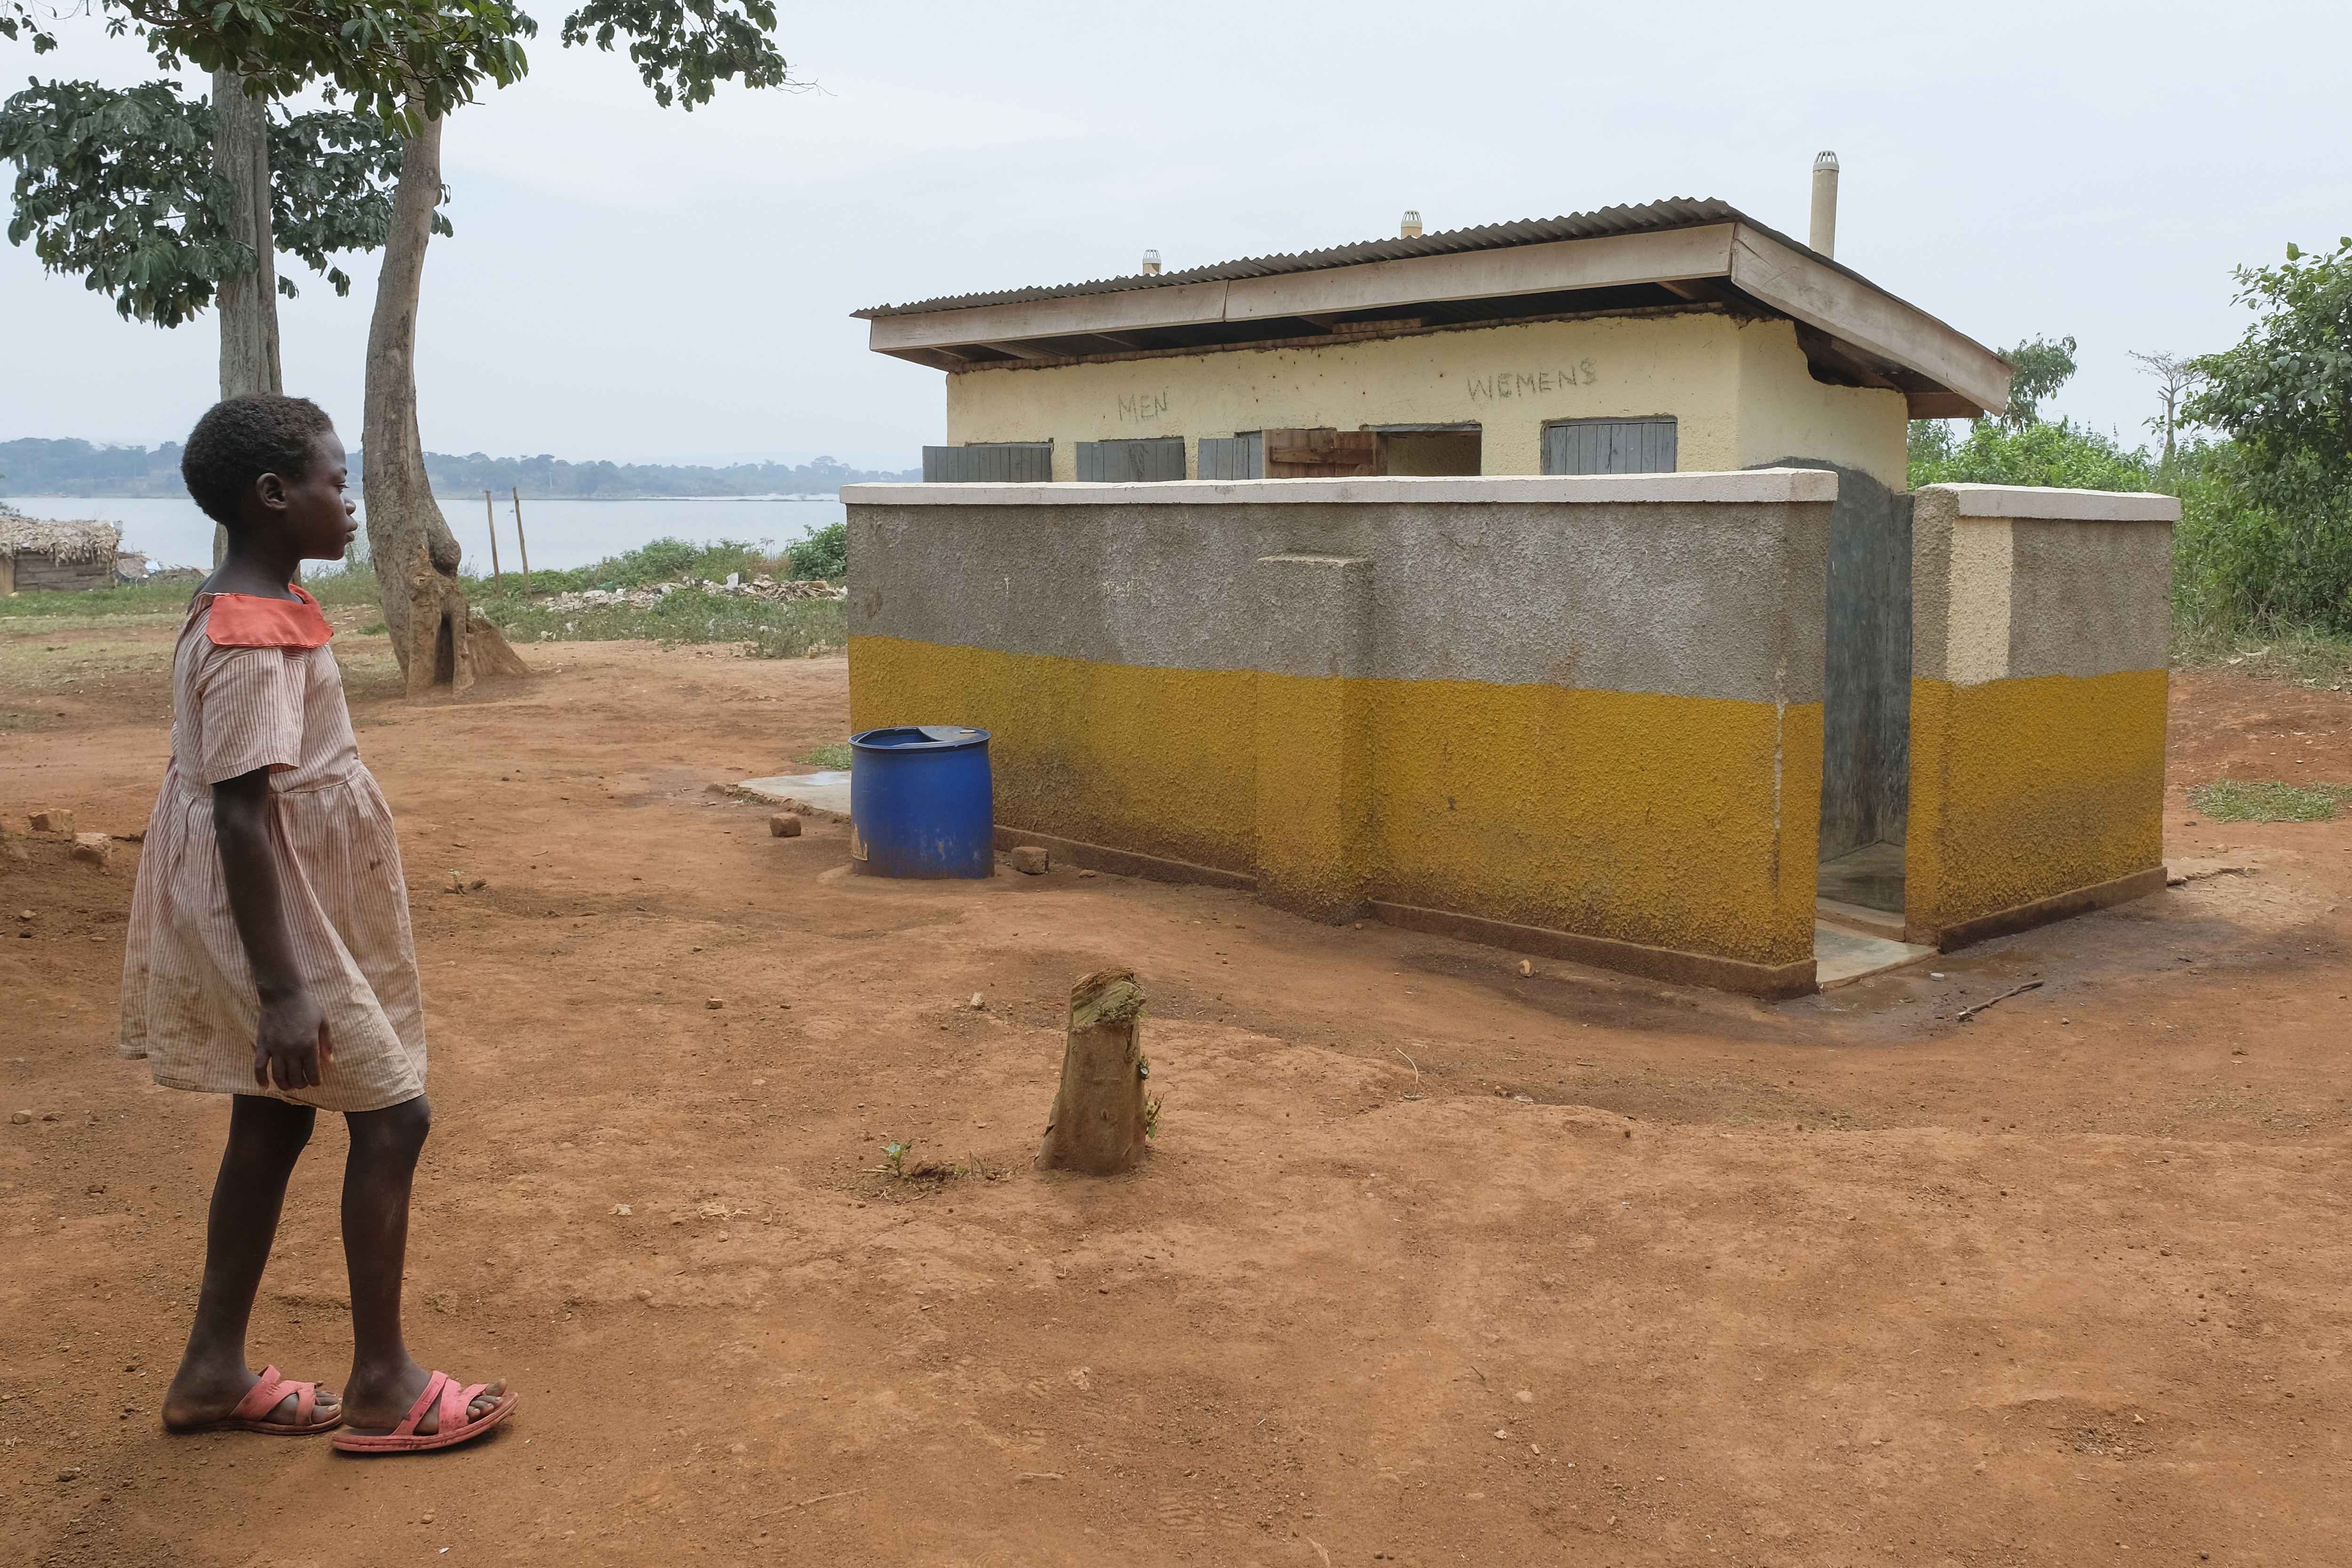 Child standing in front of sanitary facilities and laundry room. In the background Lake Victoria can be seen.